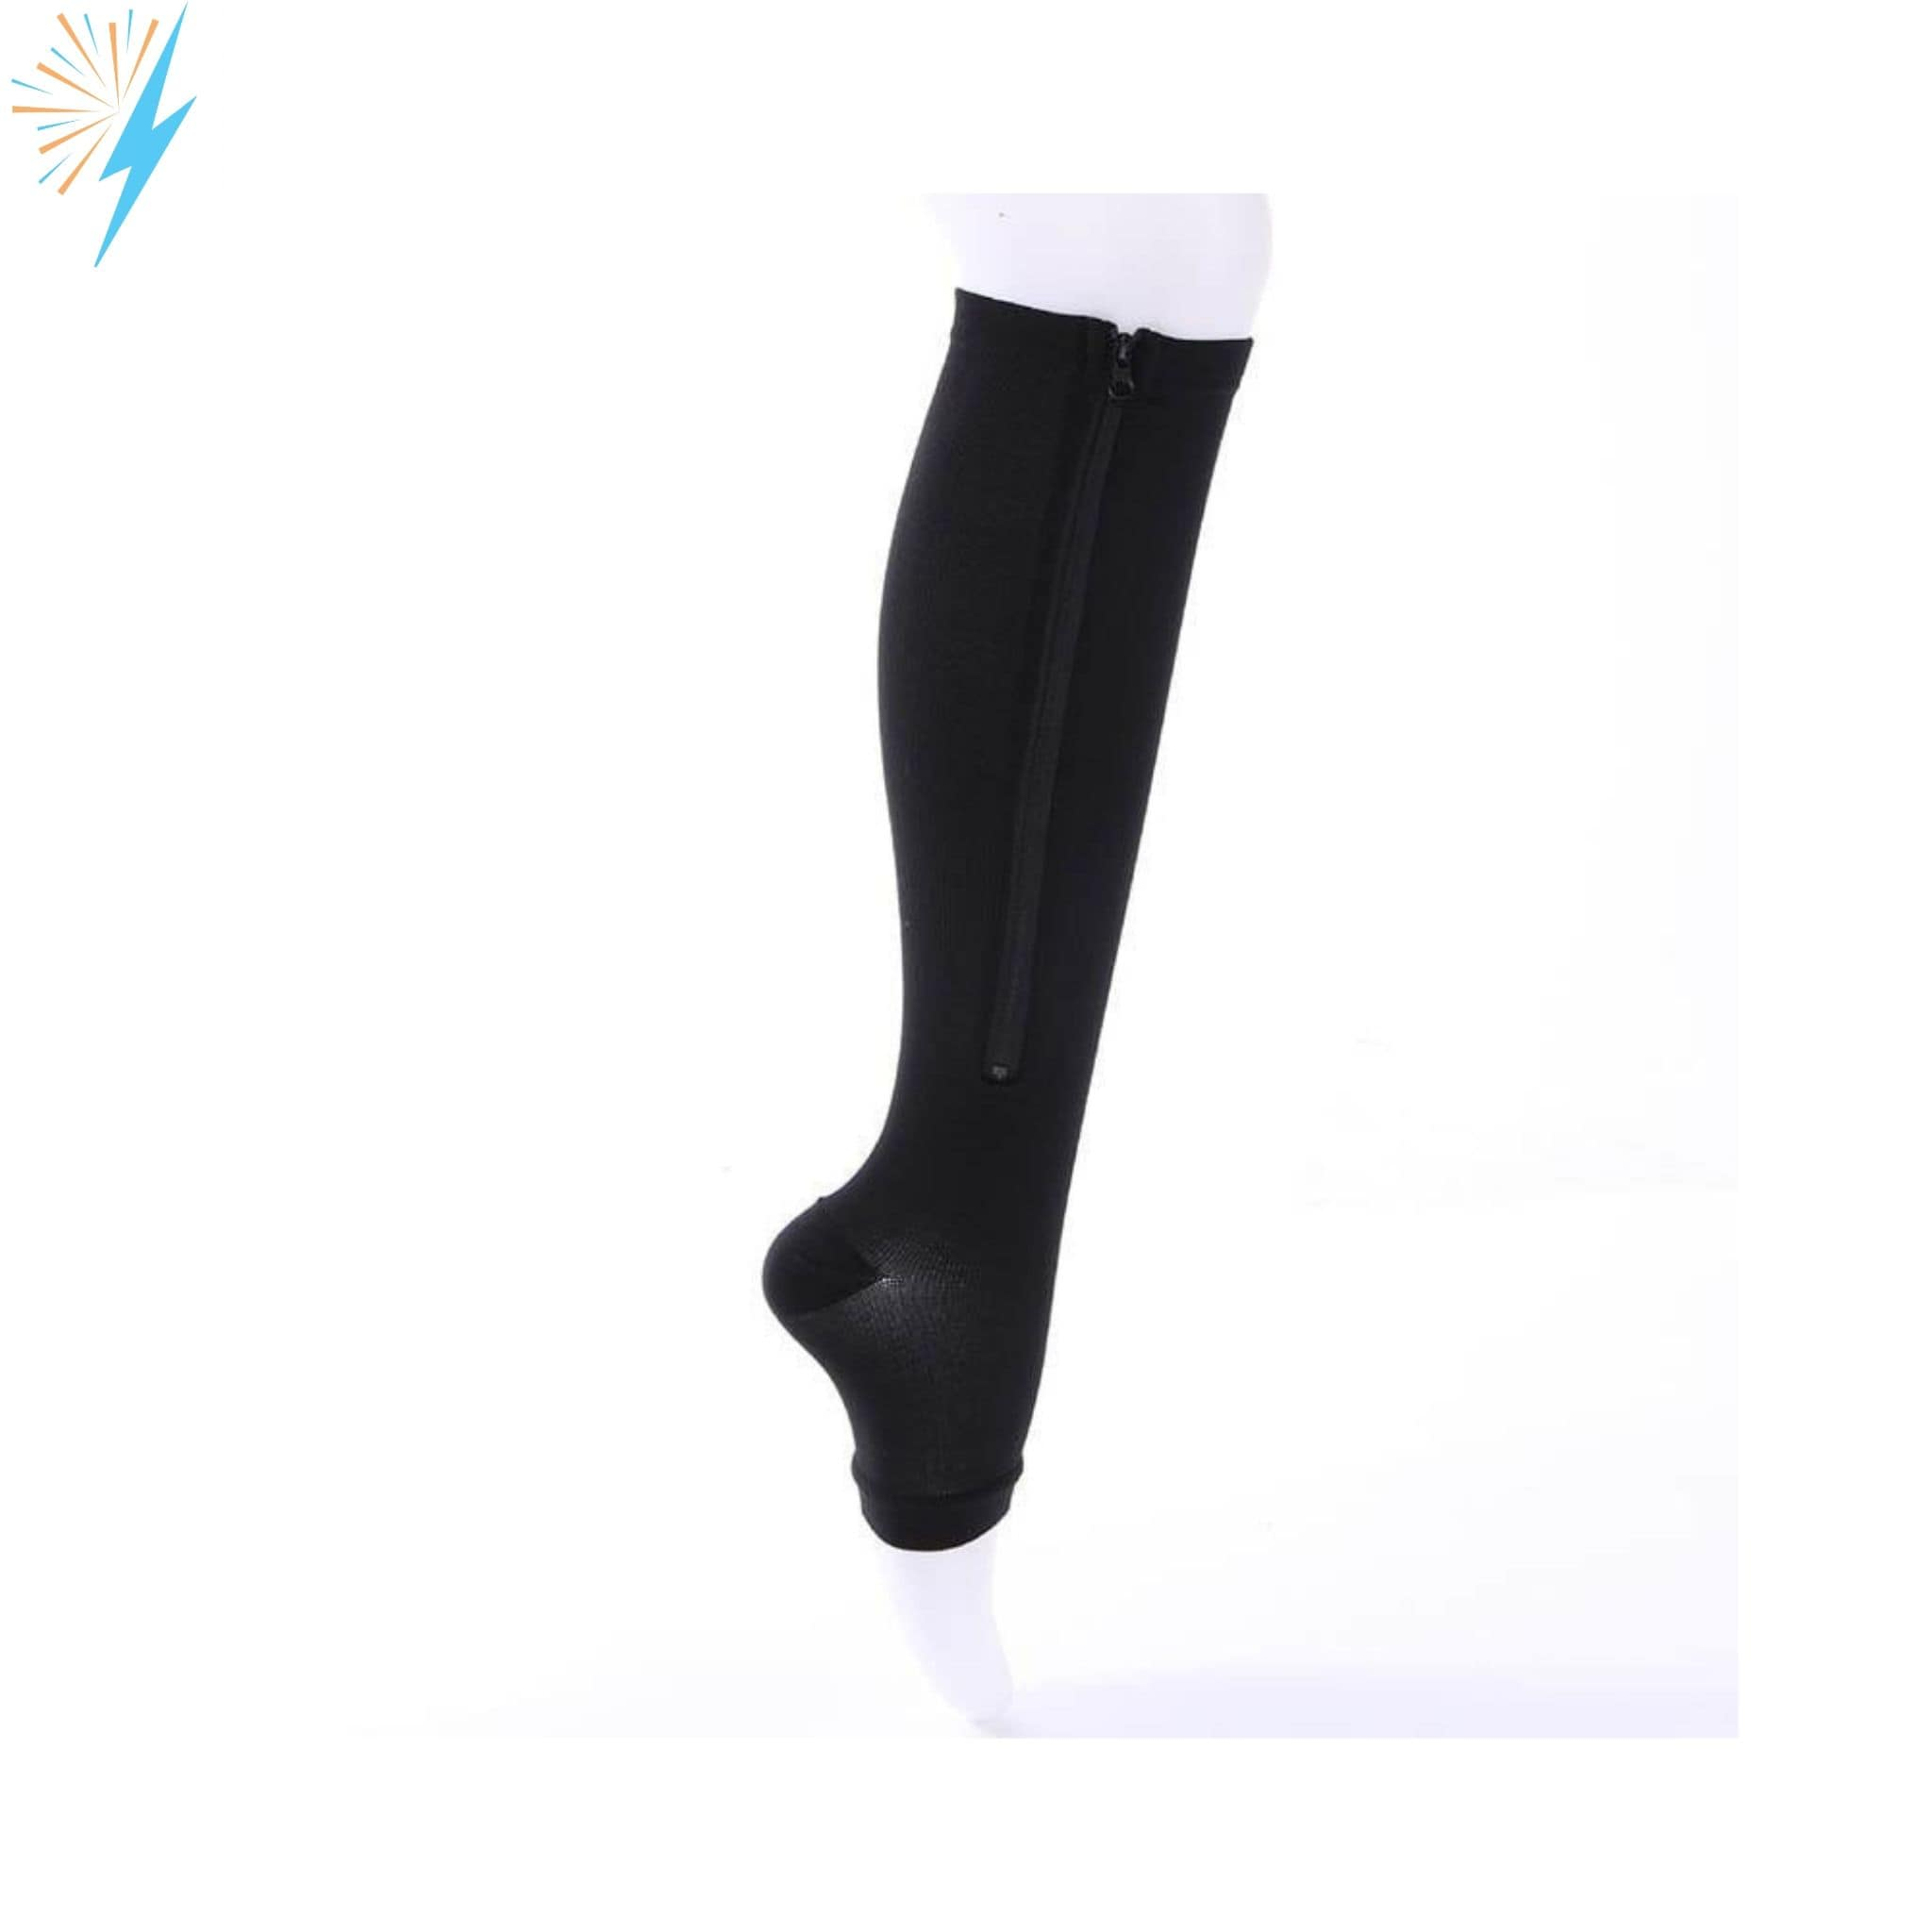 Venous Protect™ Max Compression Stockings (Pack Of 3)